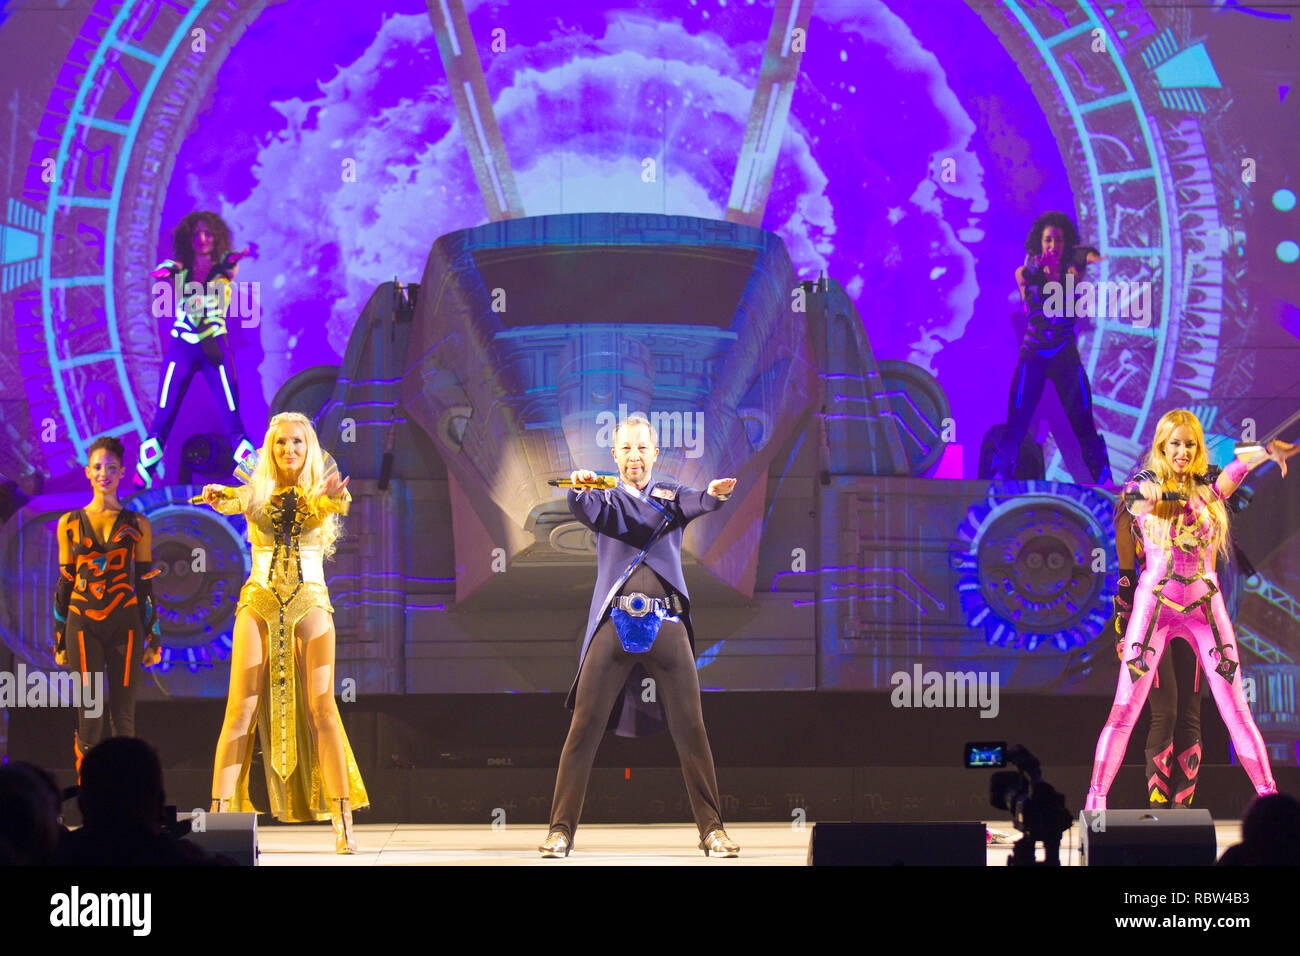 Rust, Germany - January 11, 2019: DJ Bobo launches his new 2019 Tour